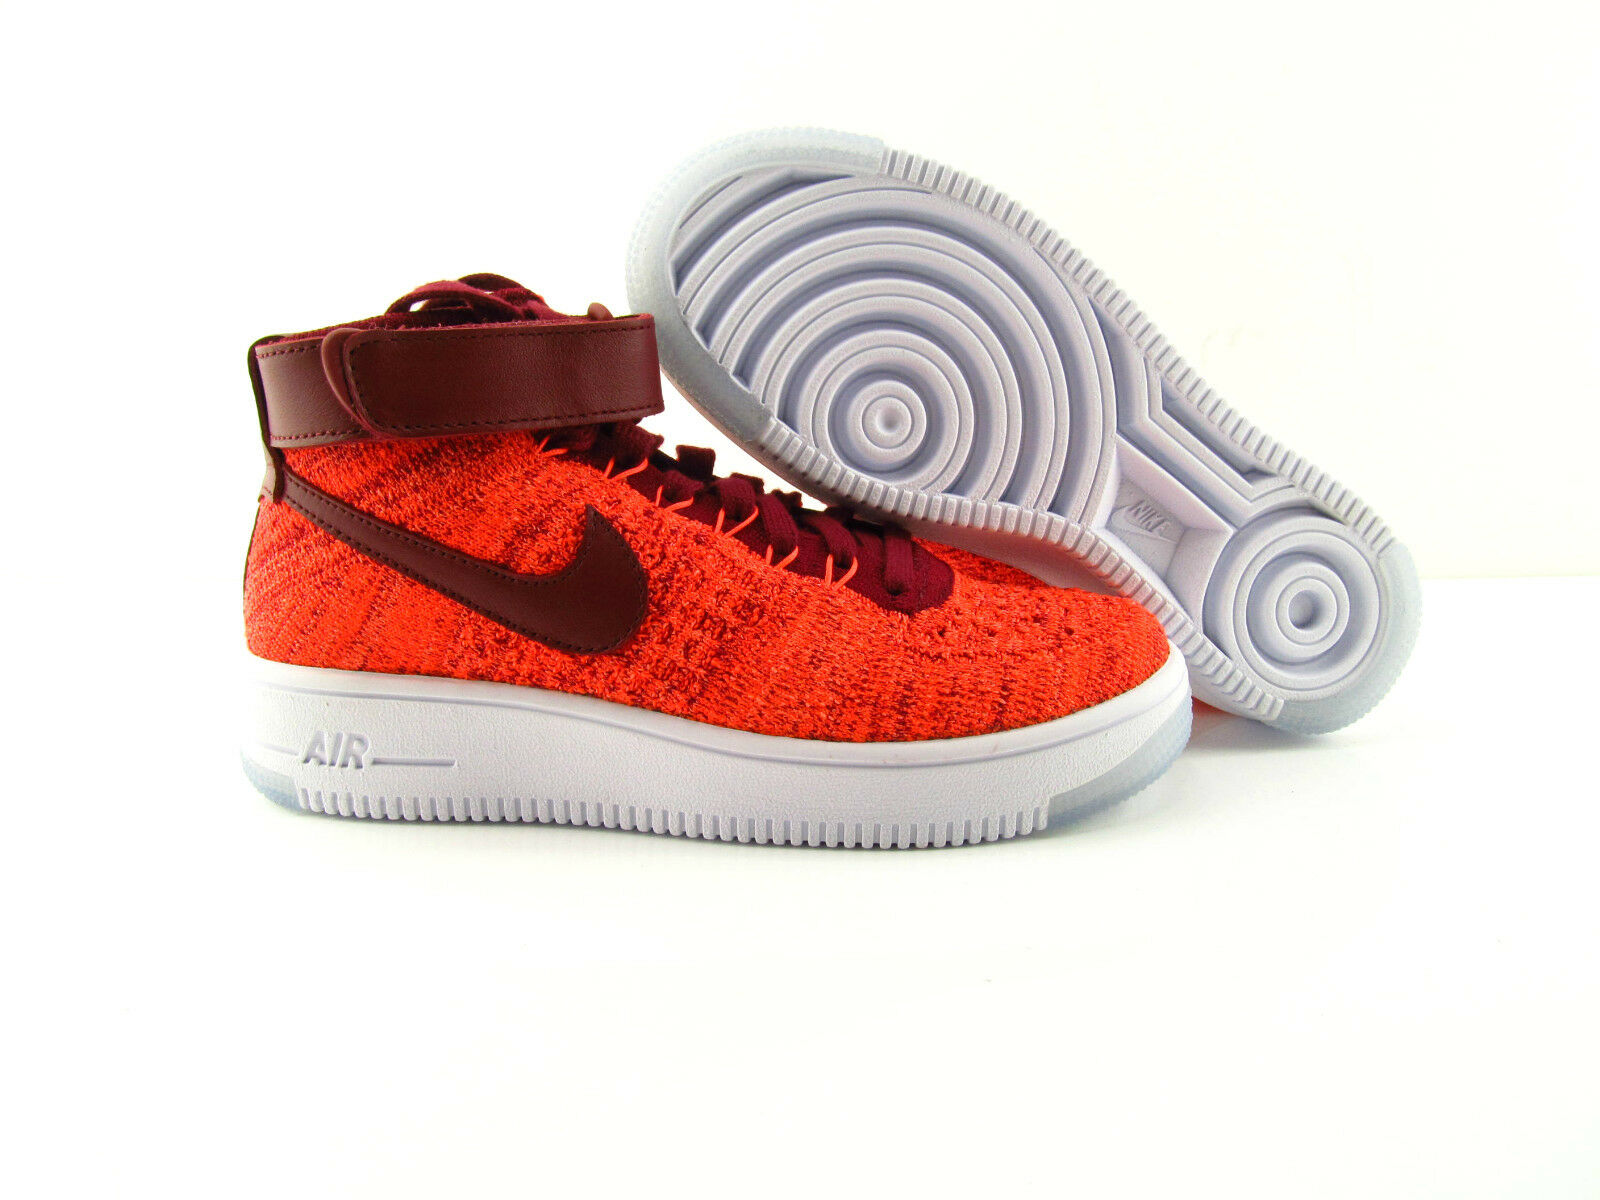 Nike Air Force 1 Sneakers AF1 Flyknit Crimson ROT Sneakers 1 New UK_7.5 US_10 EUR 42 dbf118